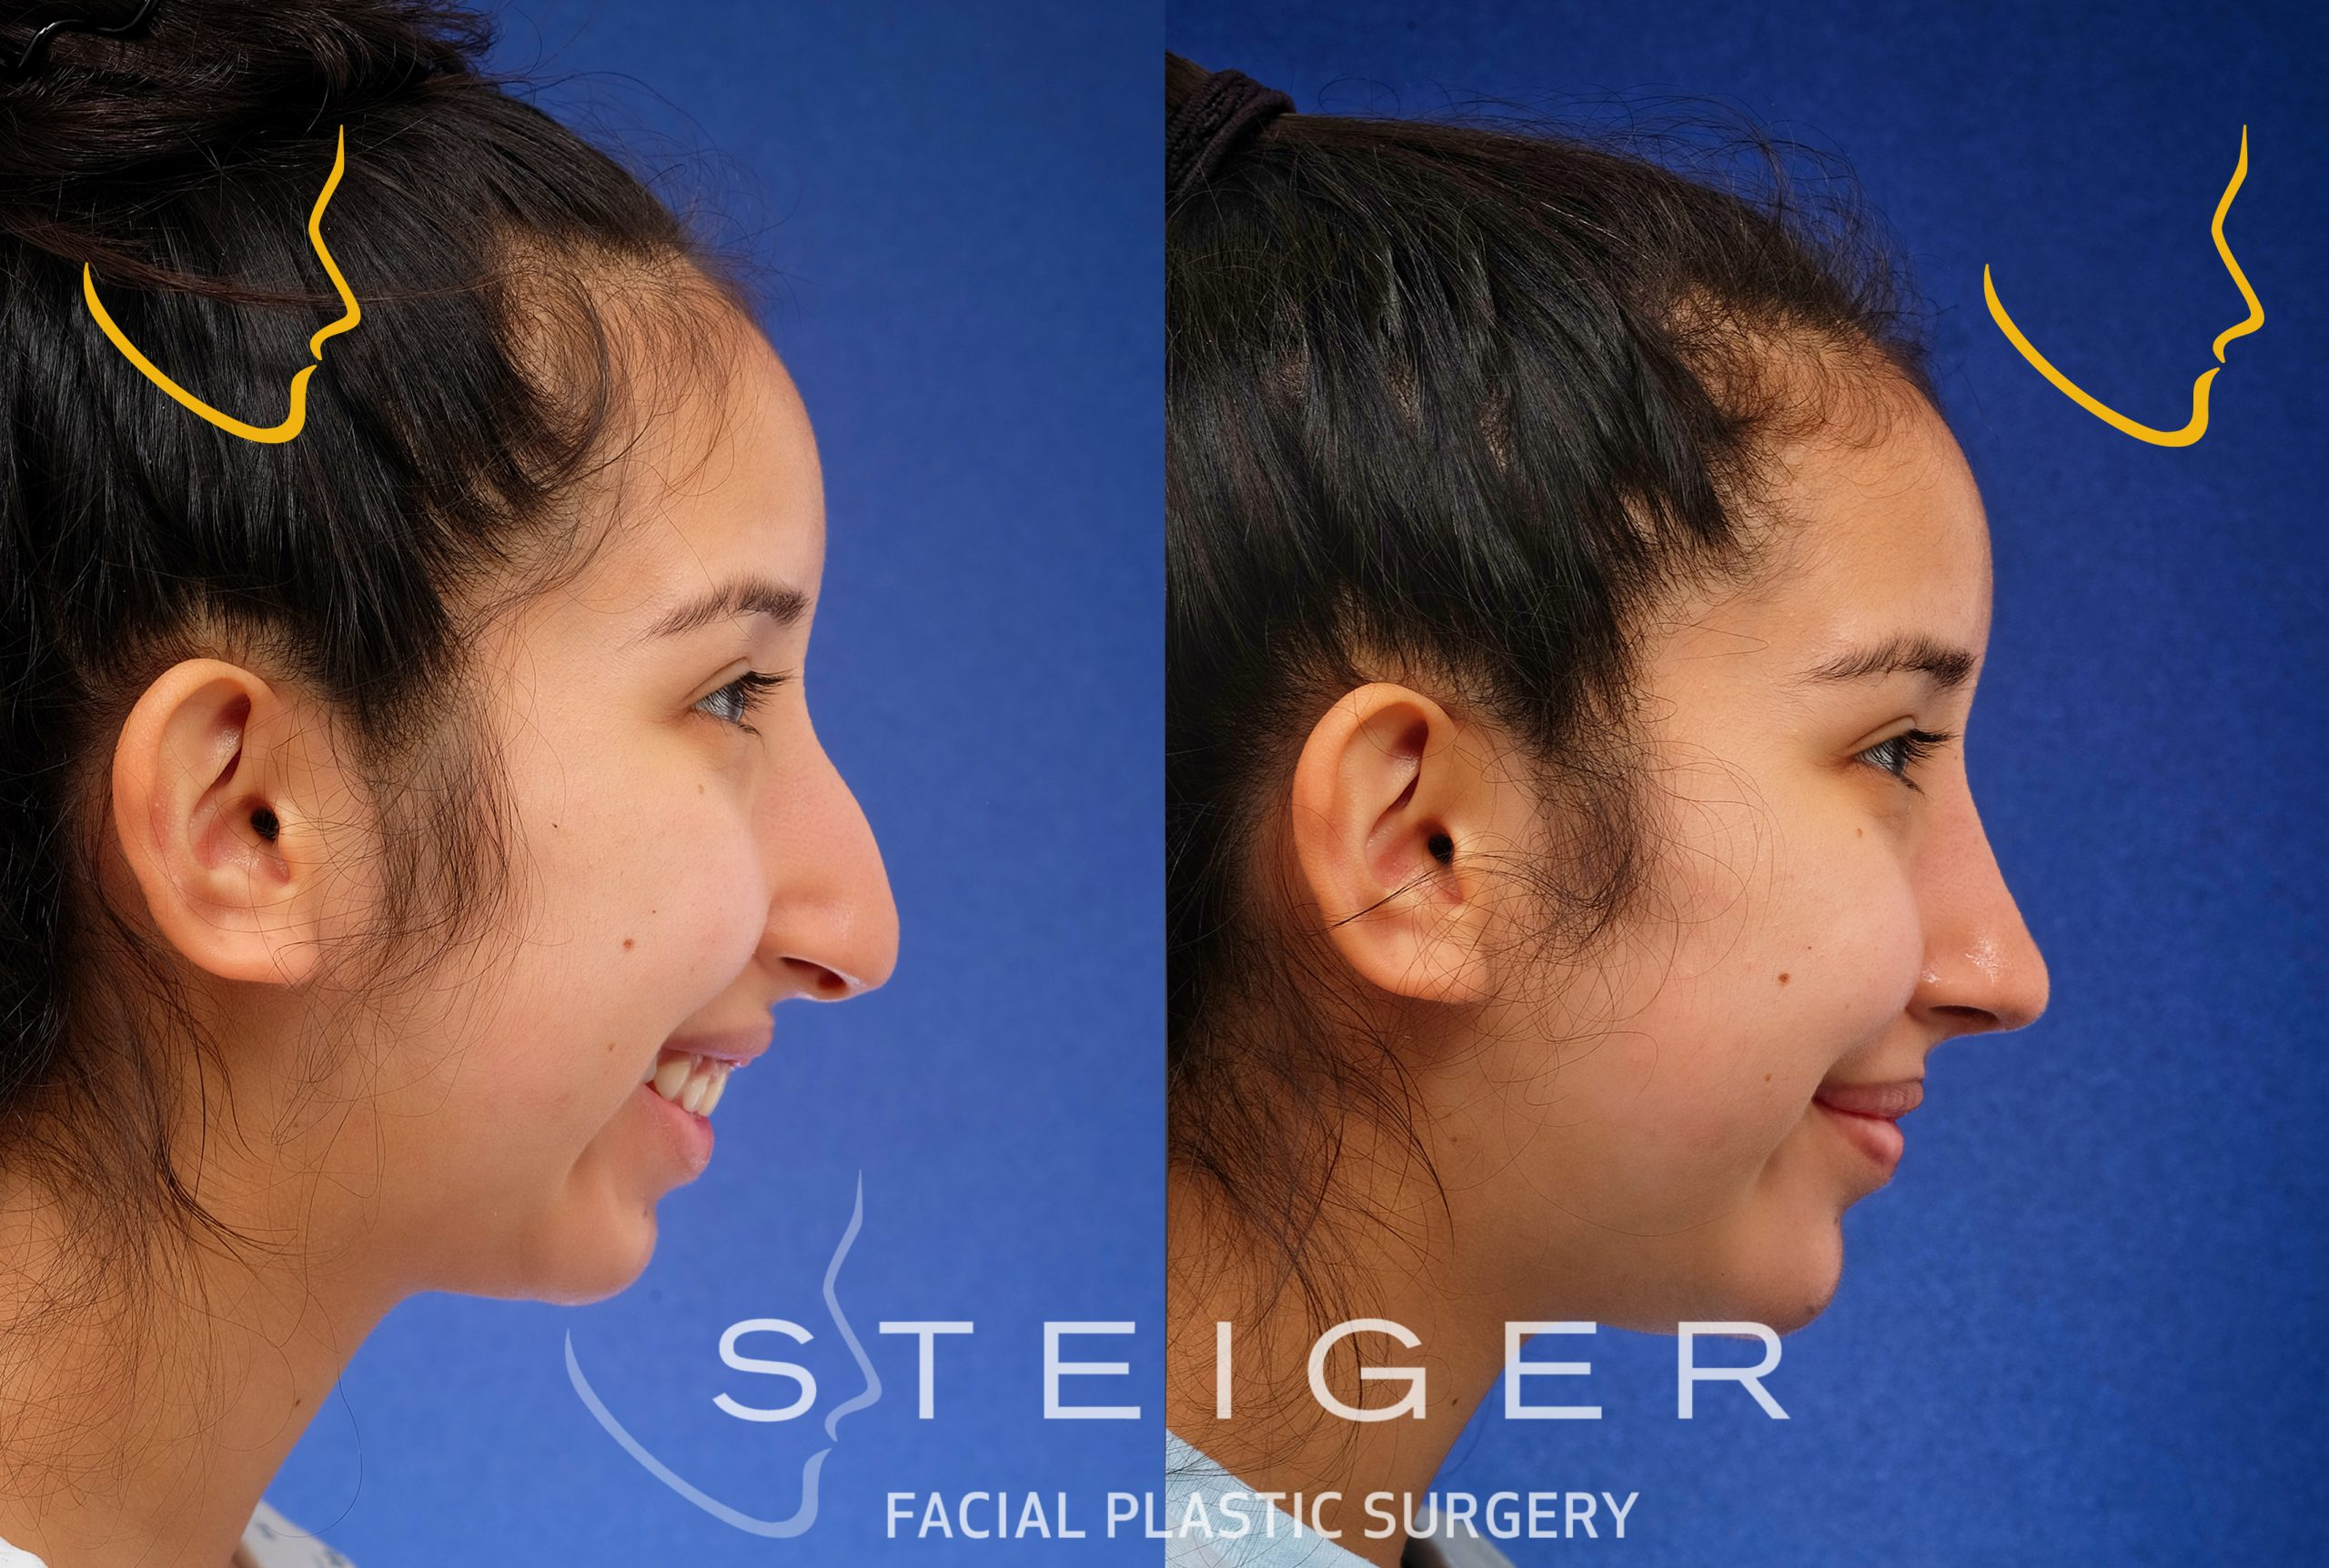 Rhinoplasty for a plunging nose when smiling